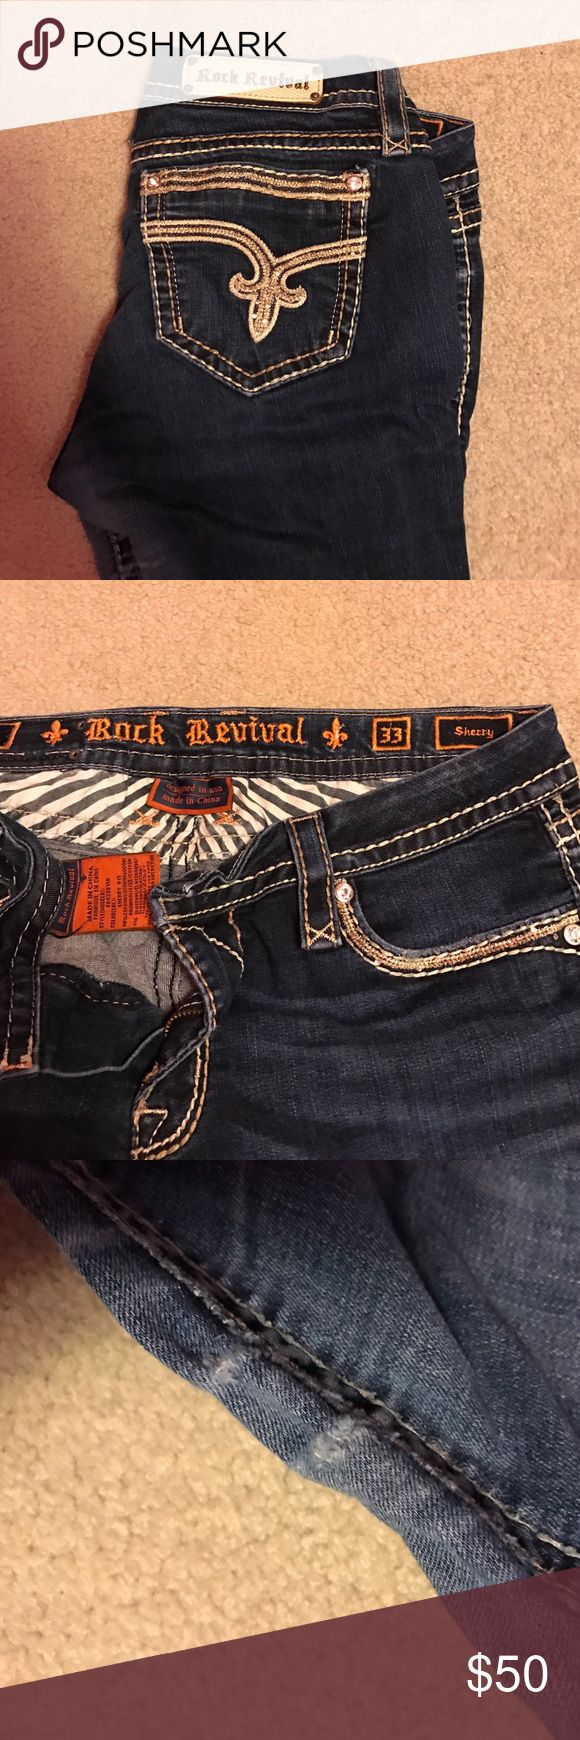 Rock Revival 33 waist 32 length Rock revival jeans. The only signs of wear are in between the legs. There is a little rip, but that can easily be fixed. Cute jeans Rock Revival Jeans Boot Cut